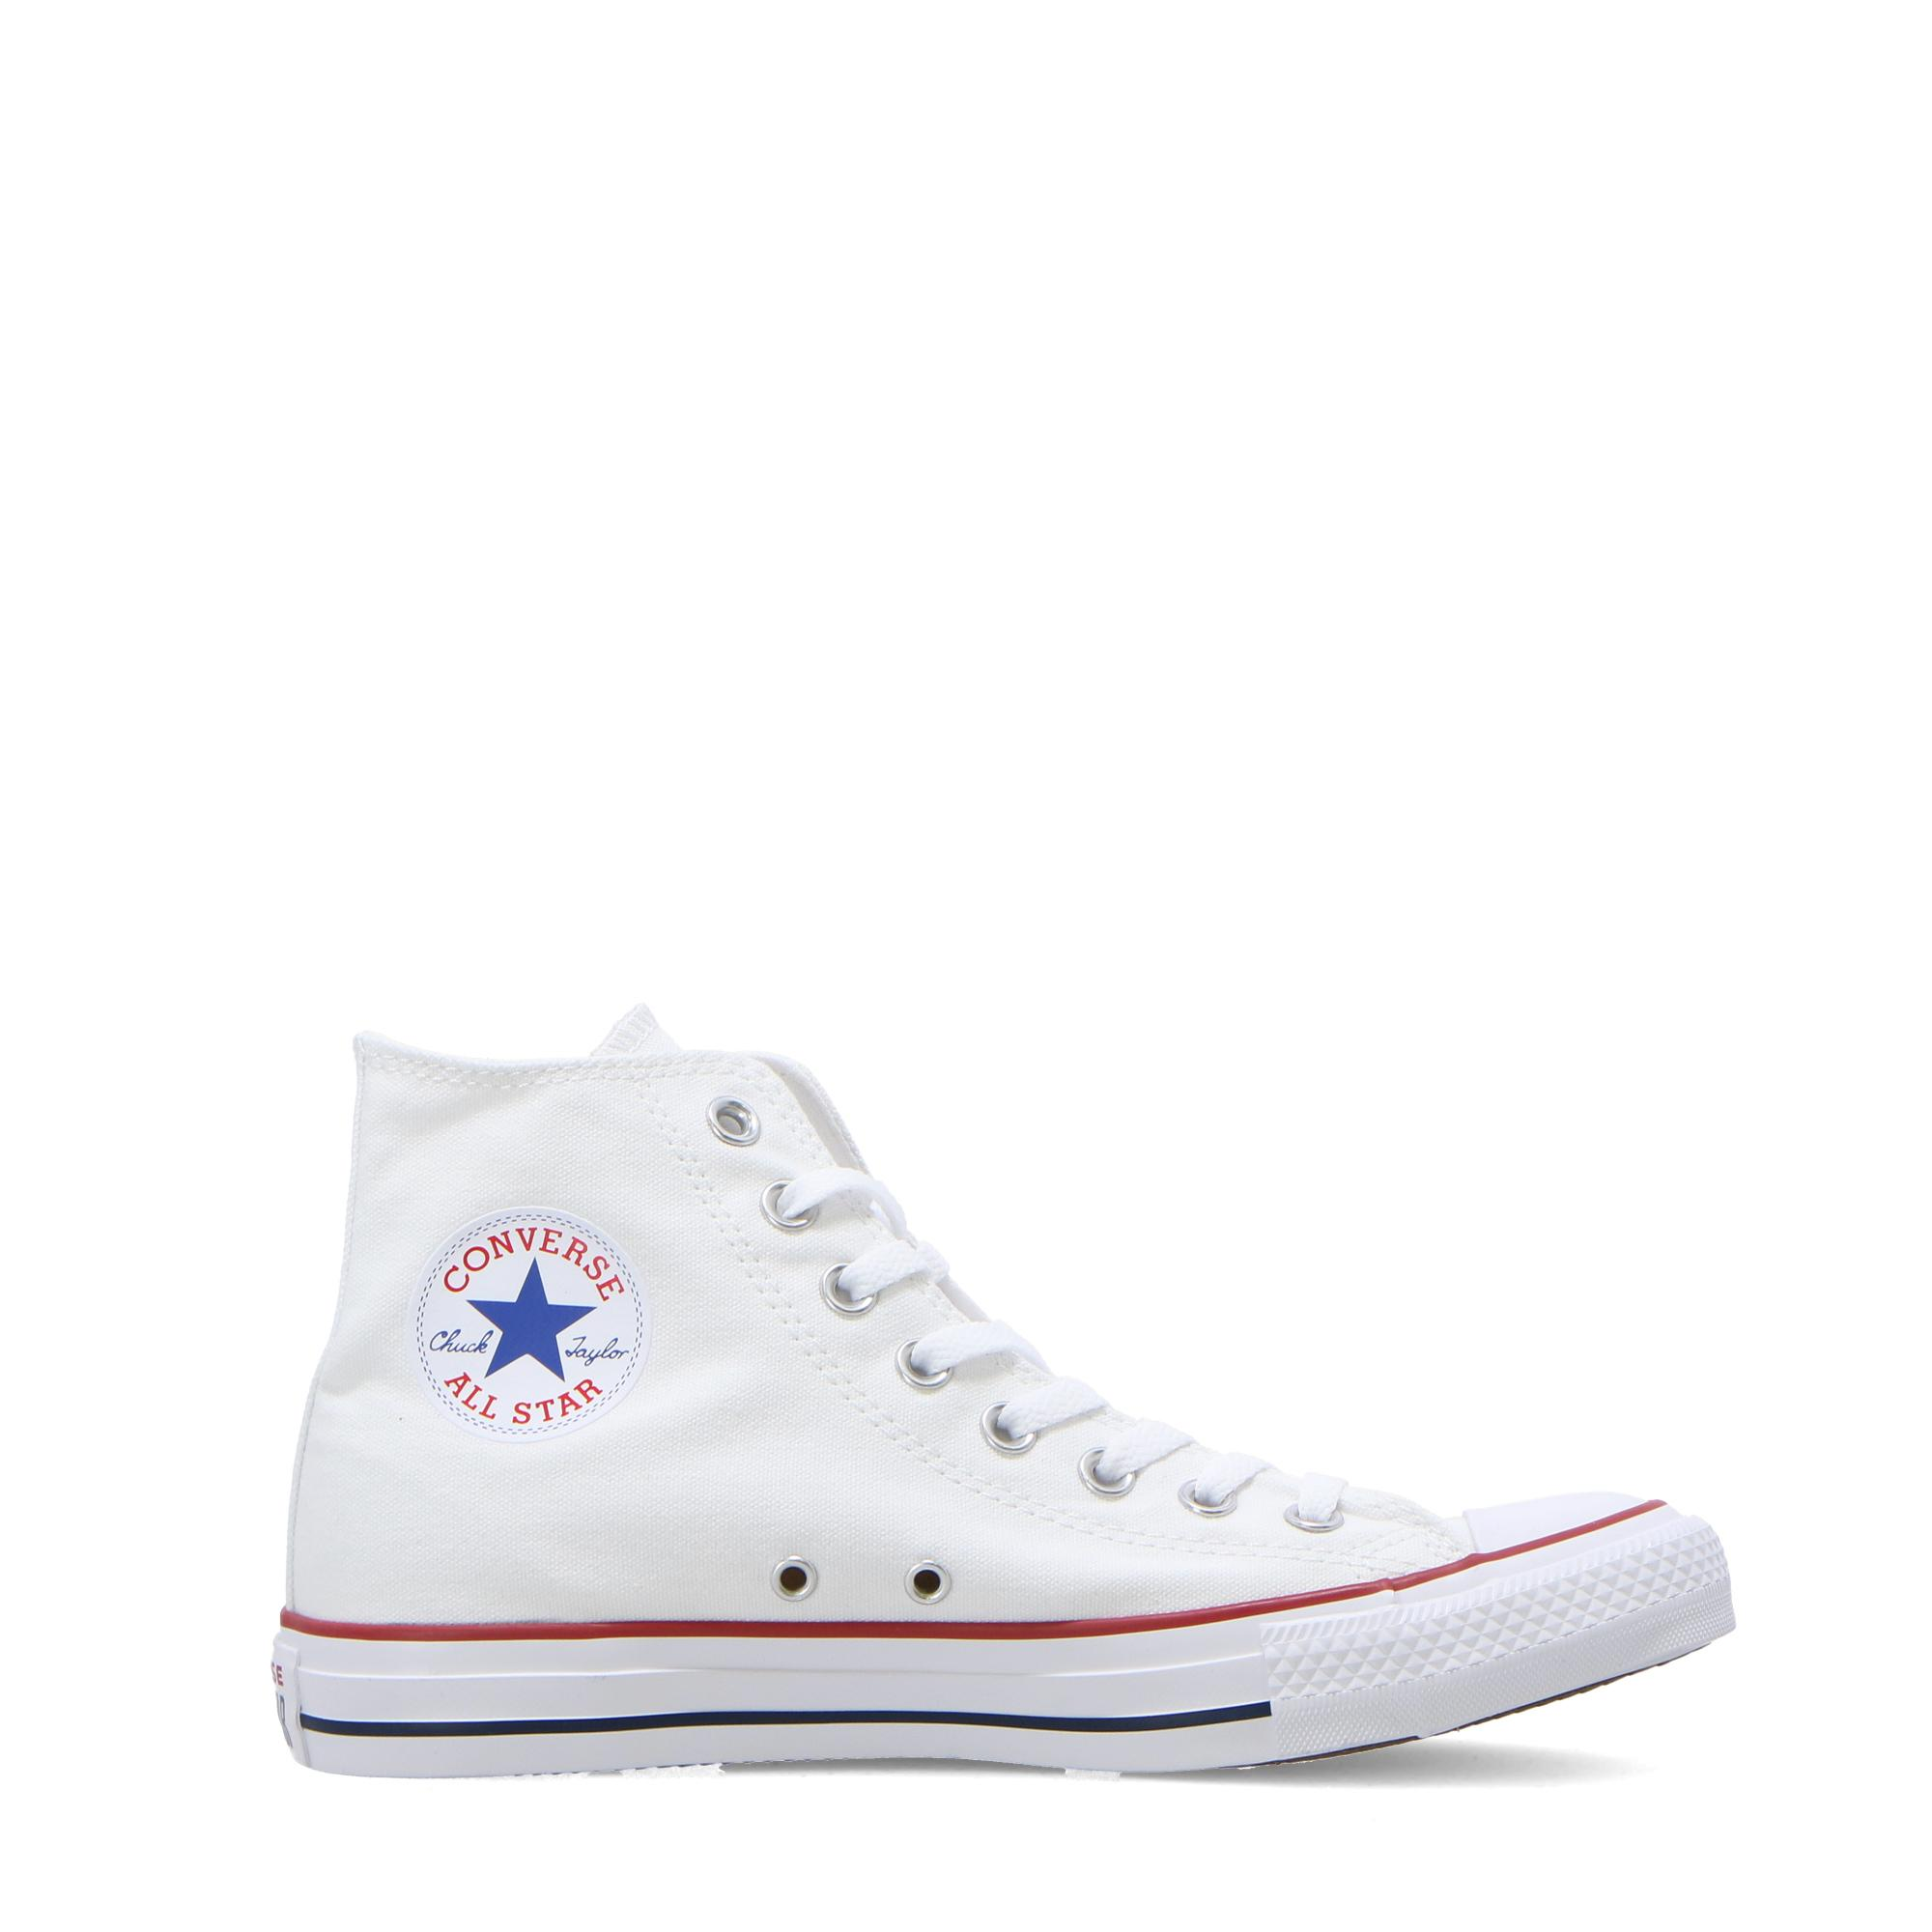 CONVERSE CHUCK TAYLOR ALL STAR HI CANVAS CORE